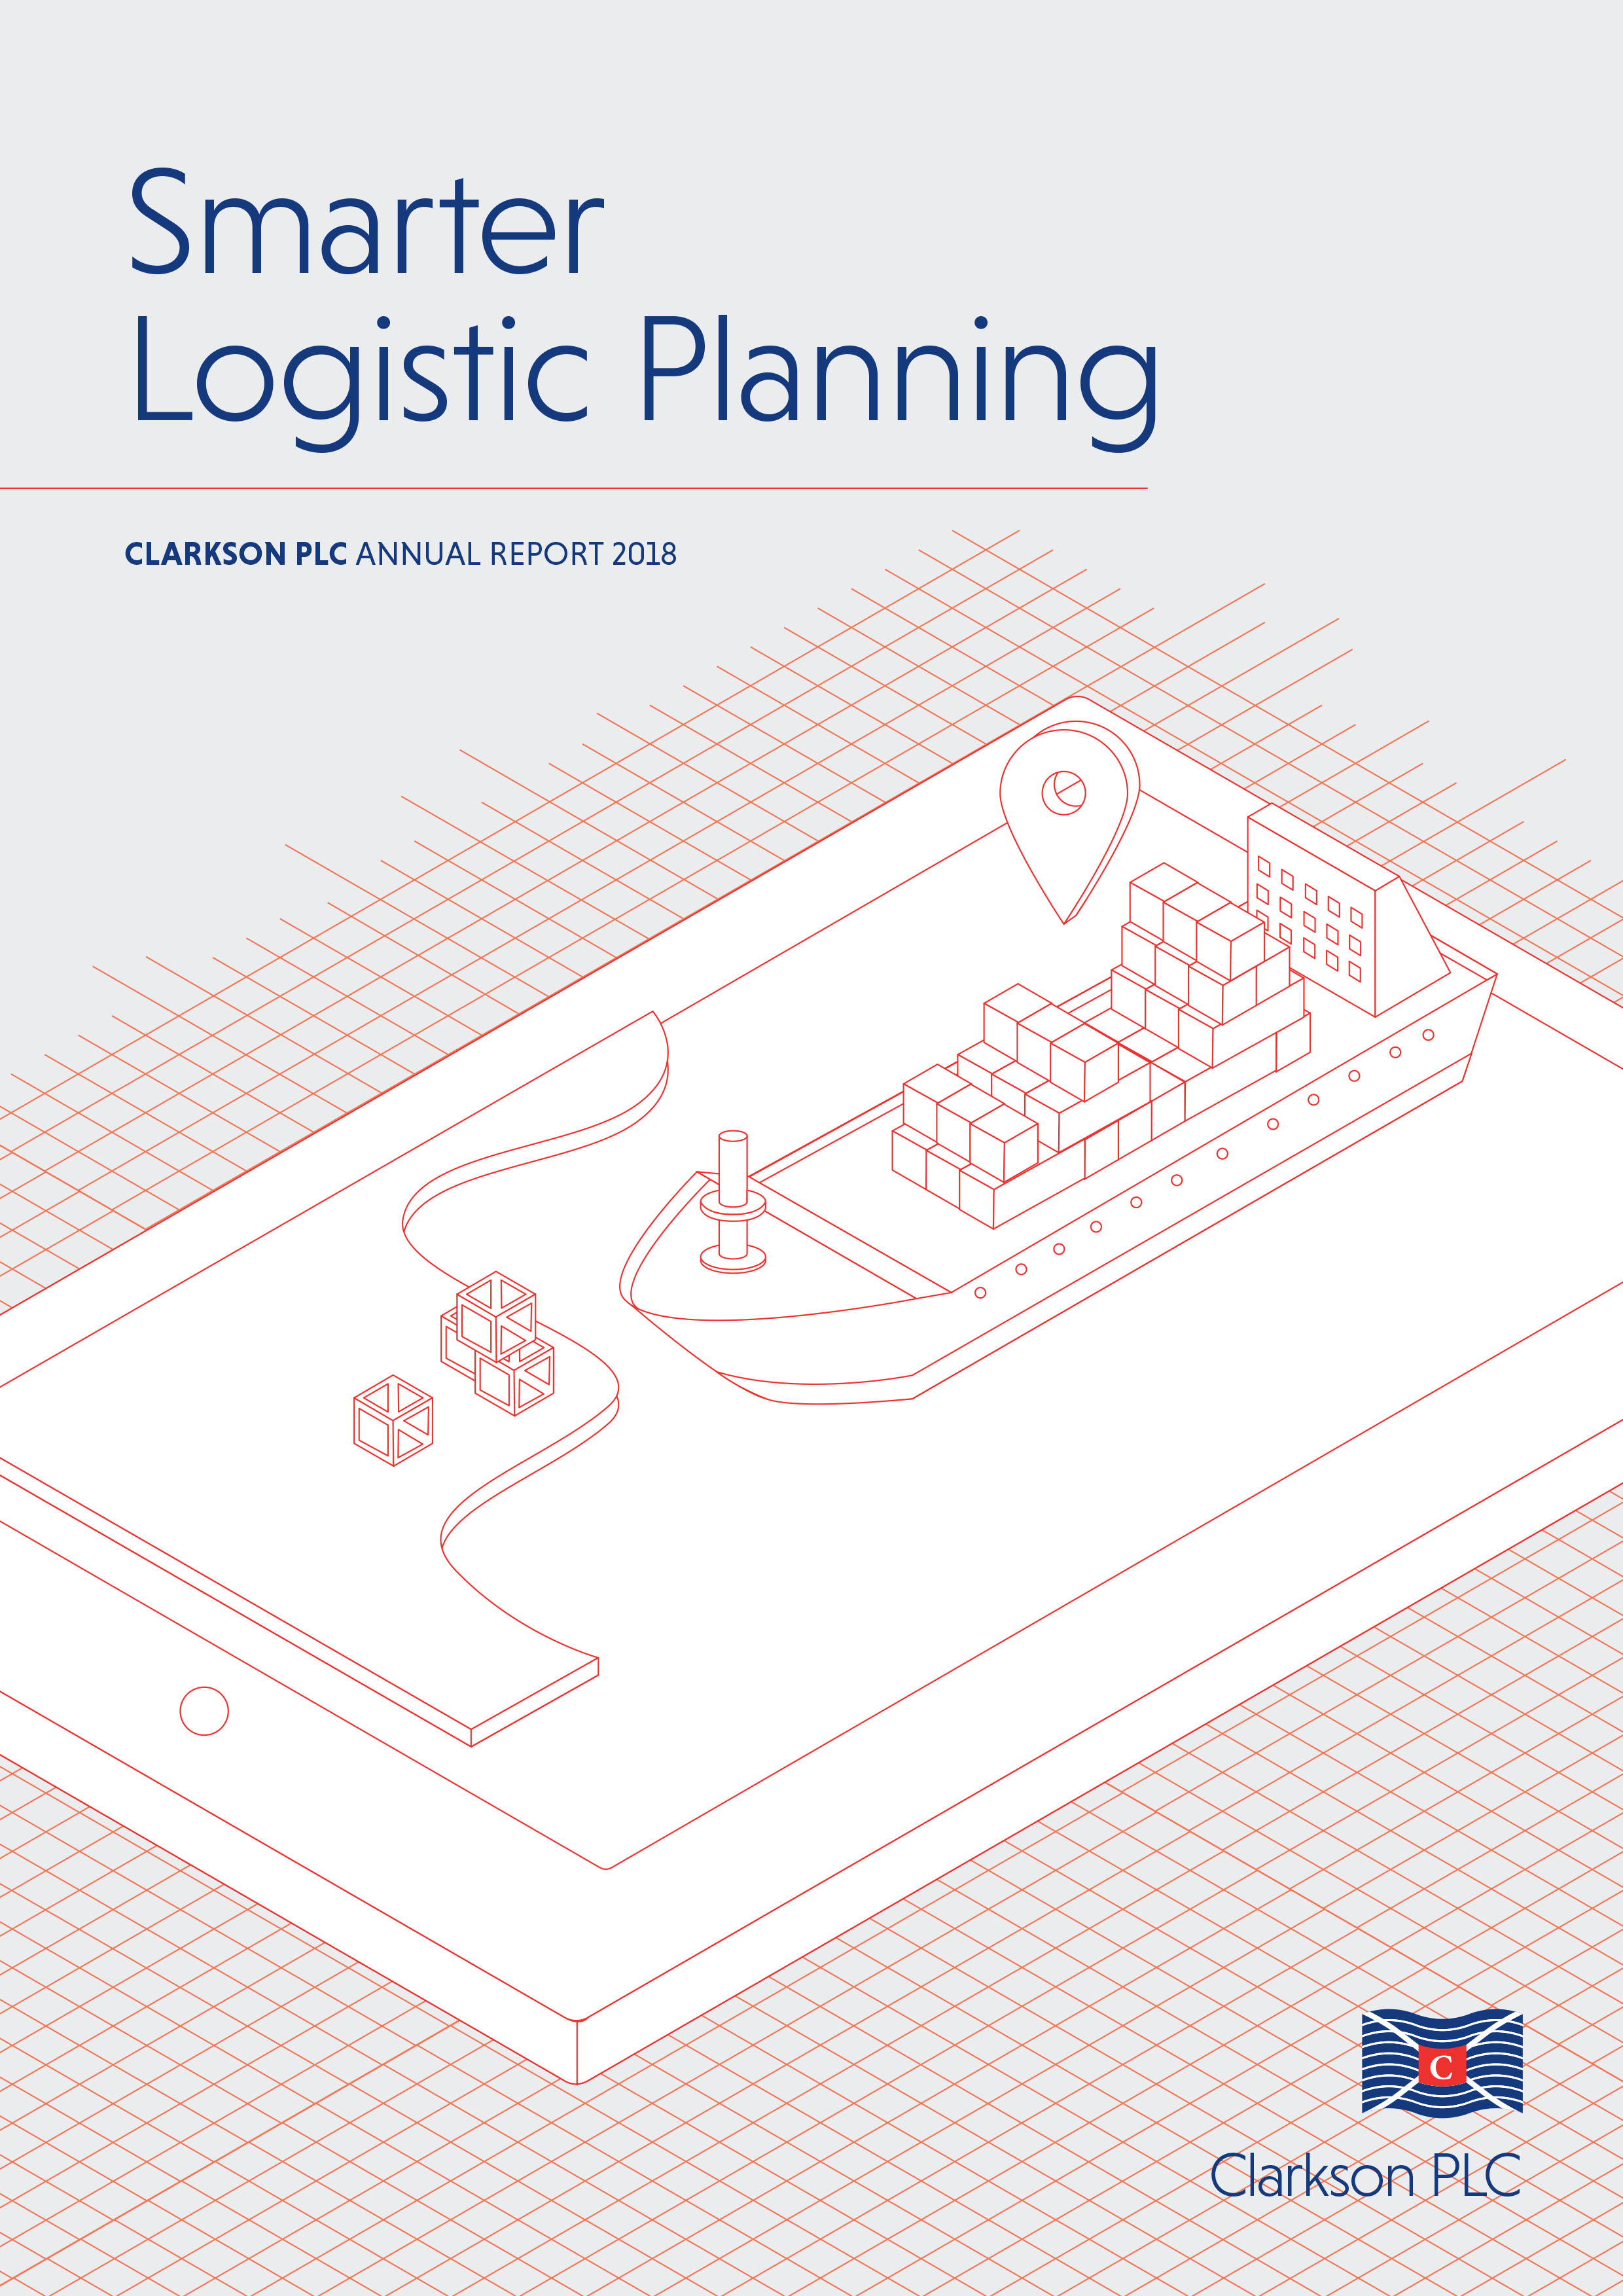 Clarksons_Route_LogisticPlanning-1.jpg